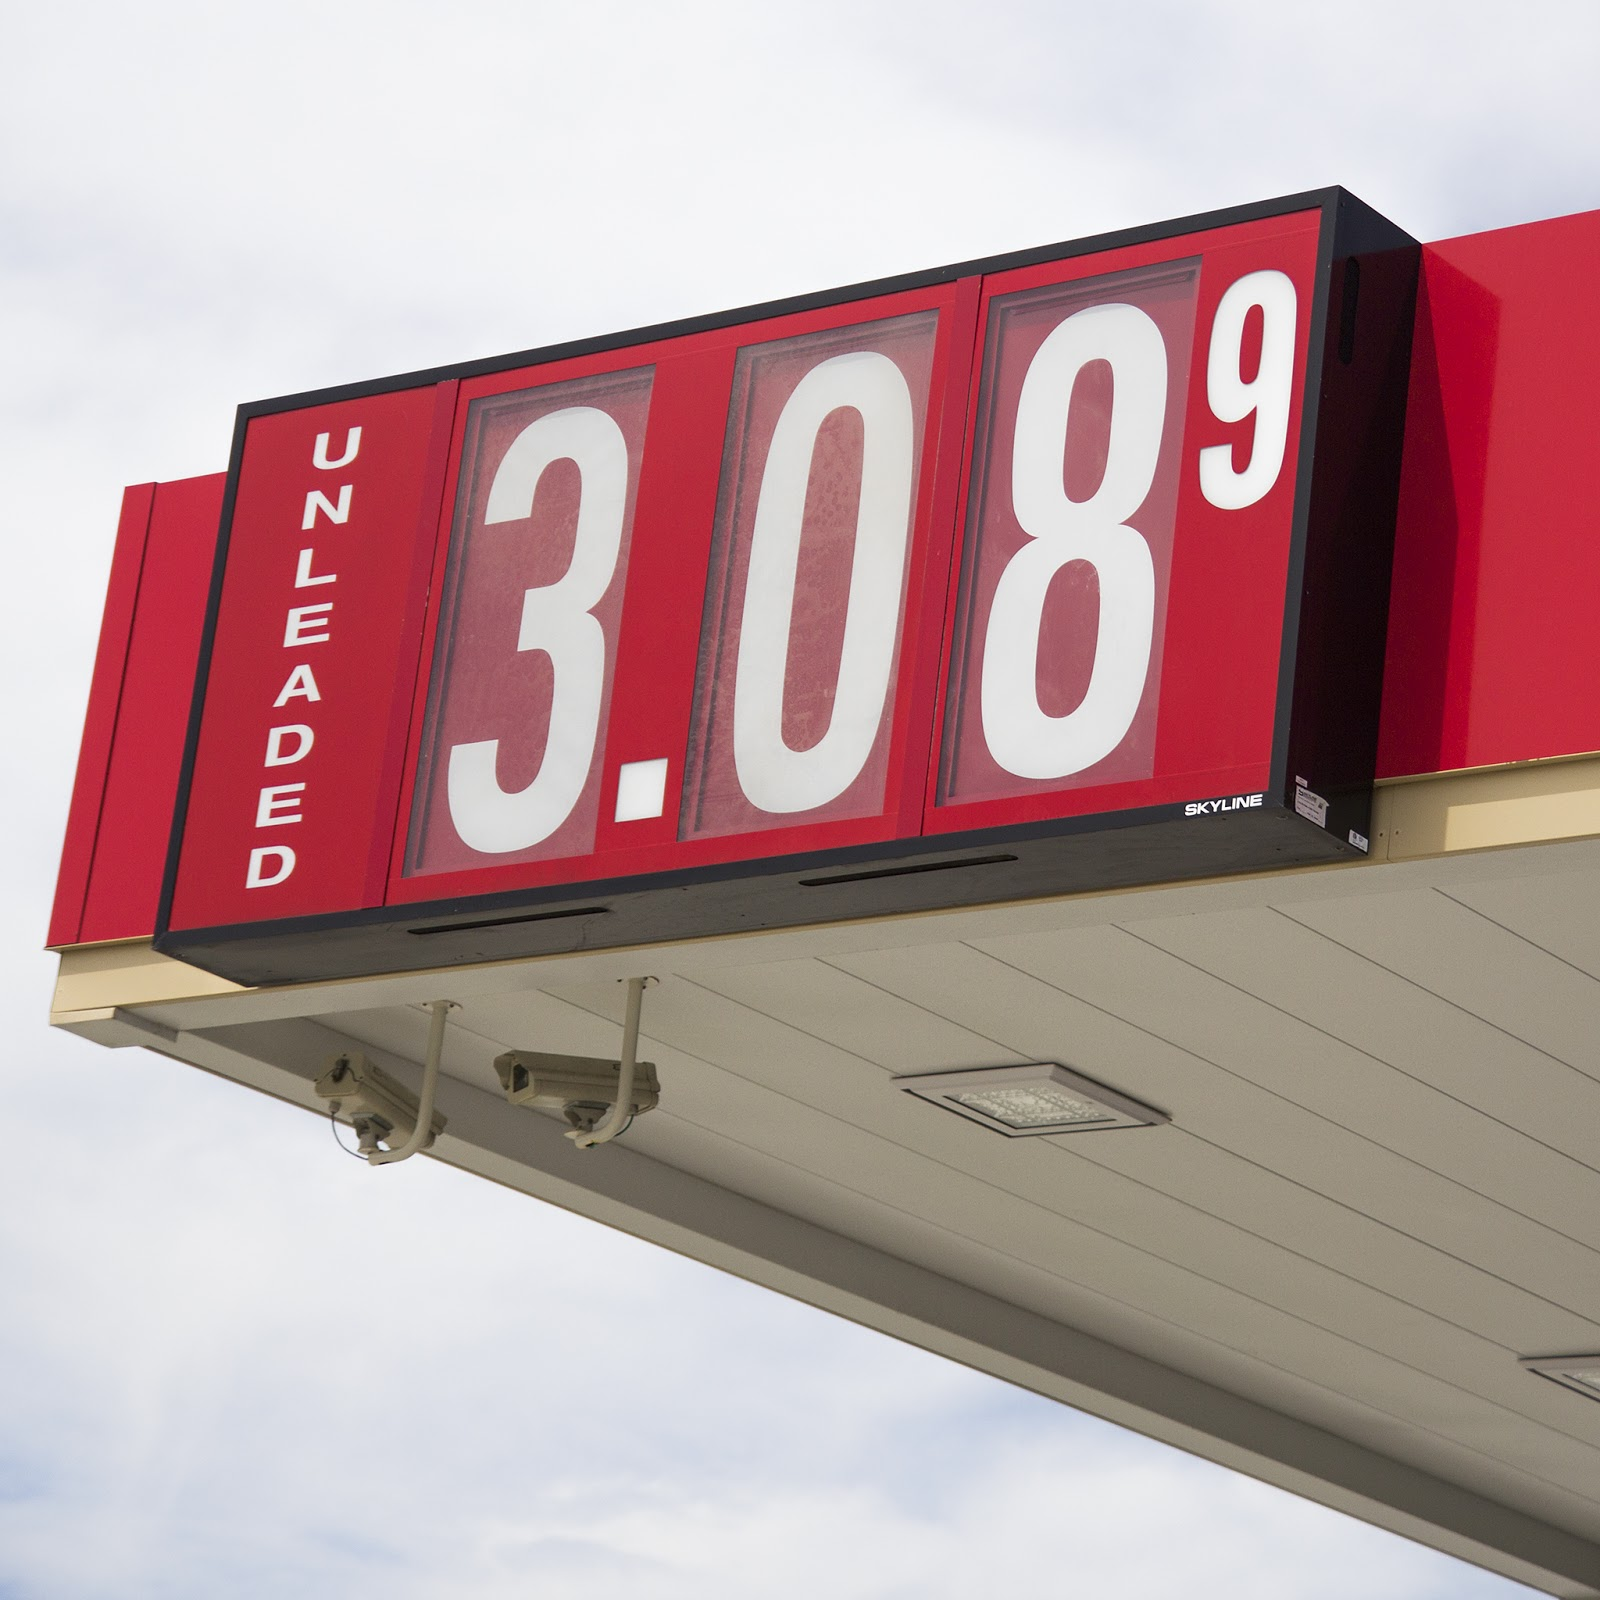 Cheapest Gas Prices In Myrtle Beach Sc